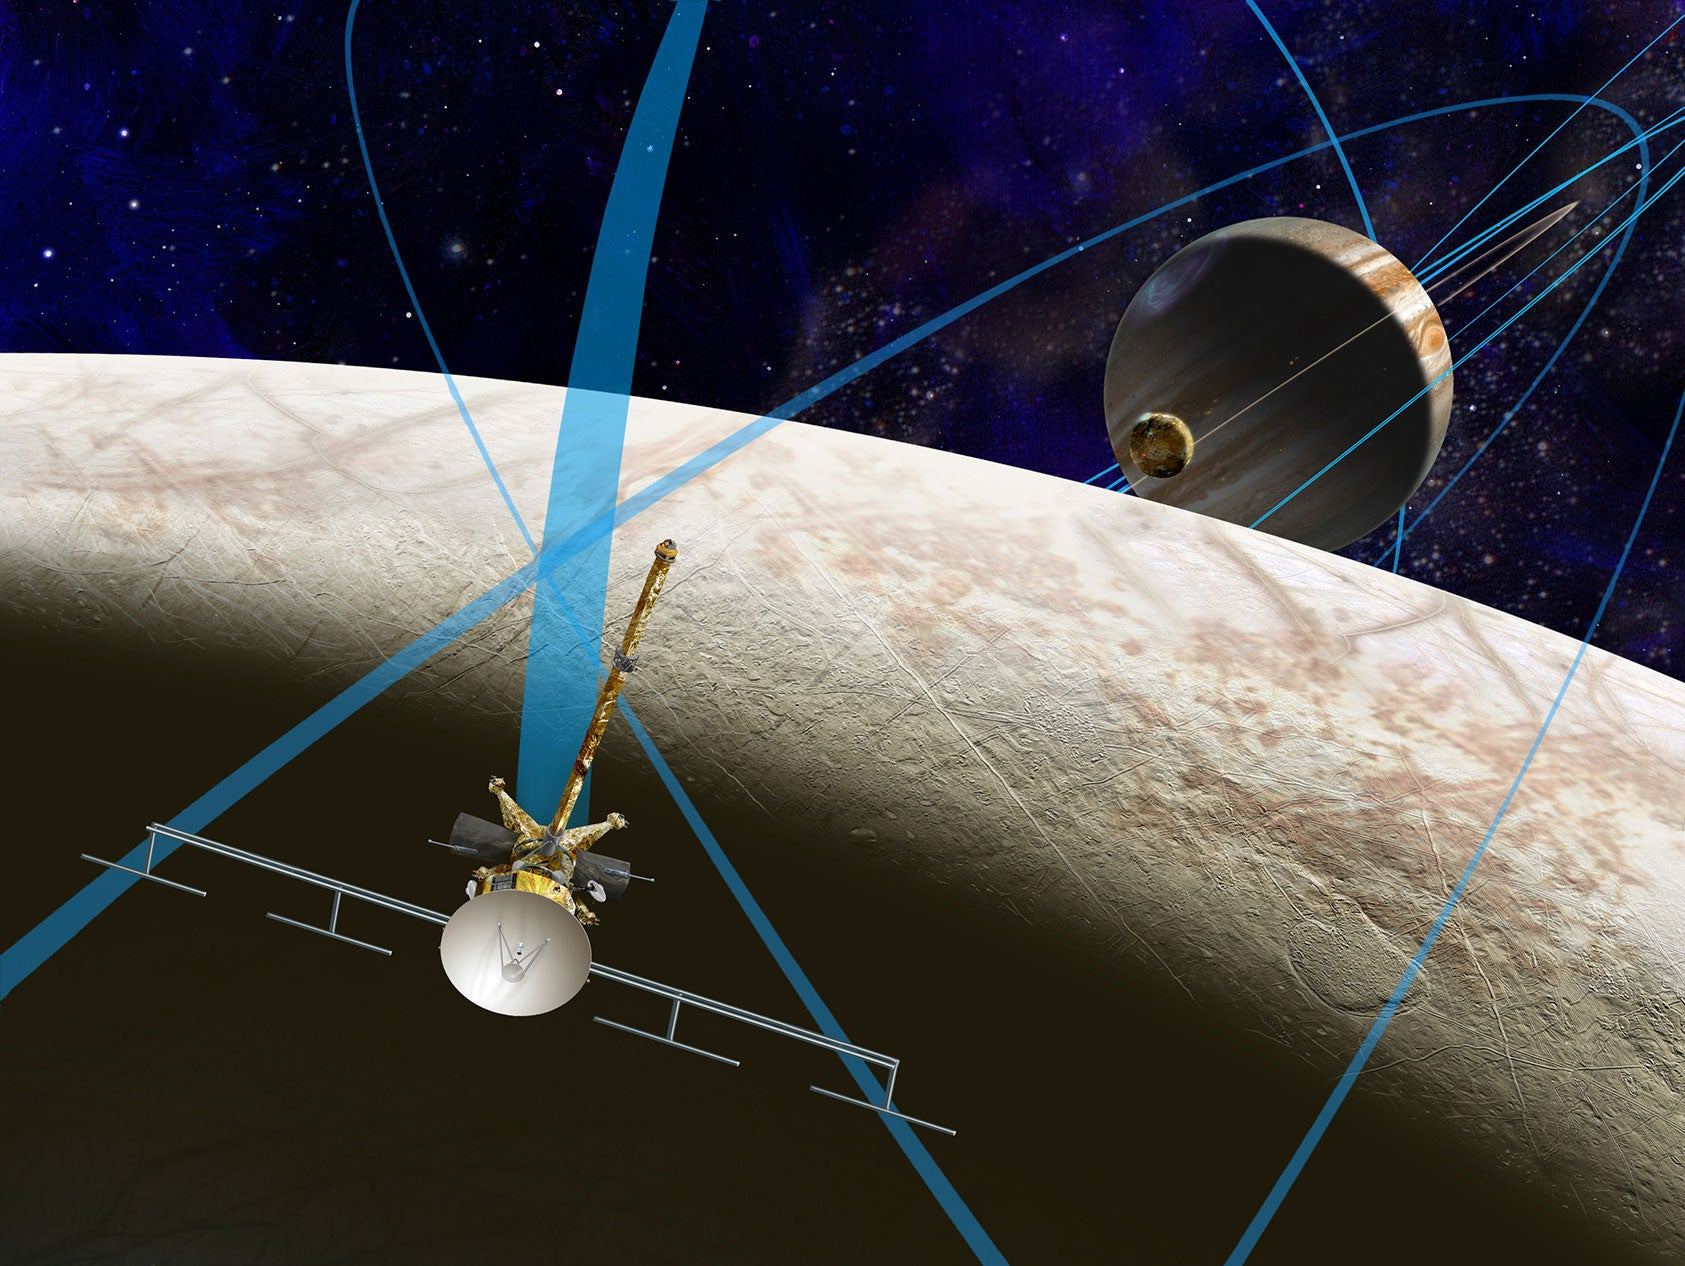 Nasa sets aside $25 million for instruments necessary for the 'search for life beyond Earth'